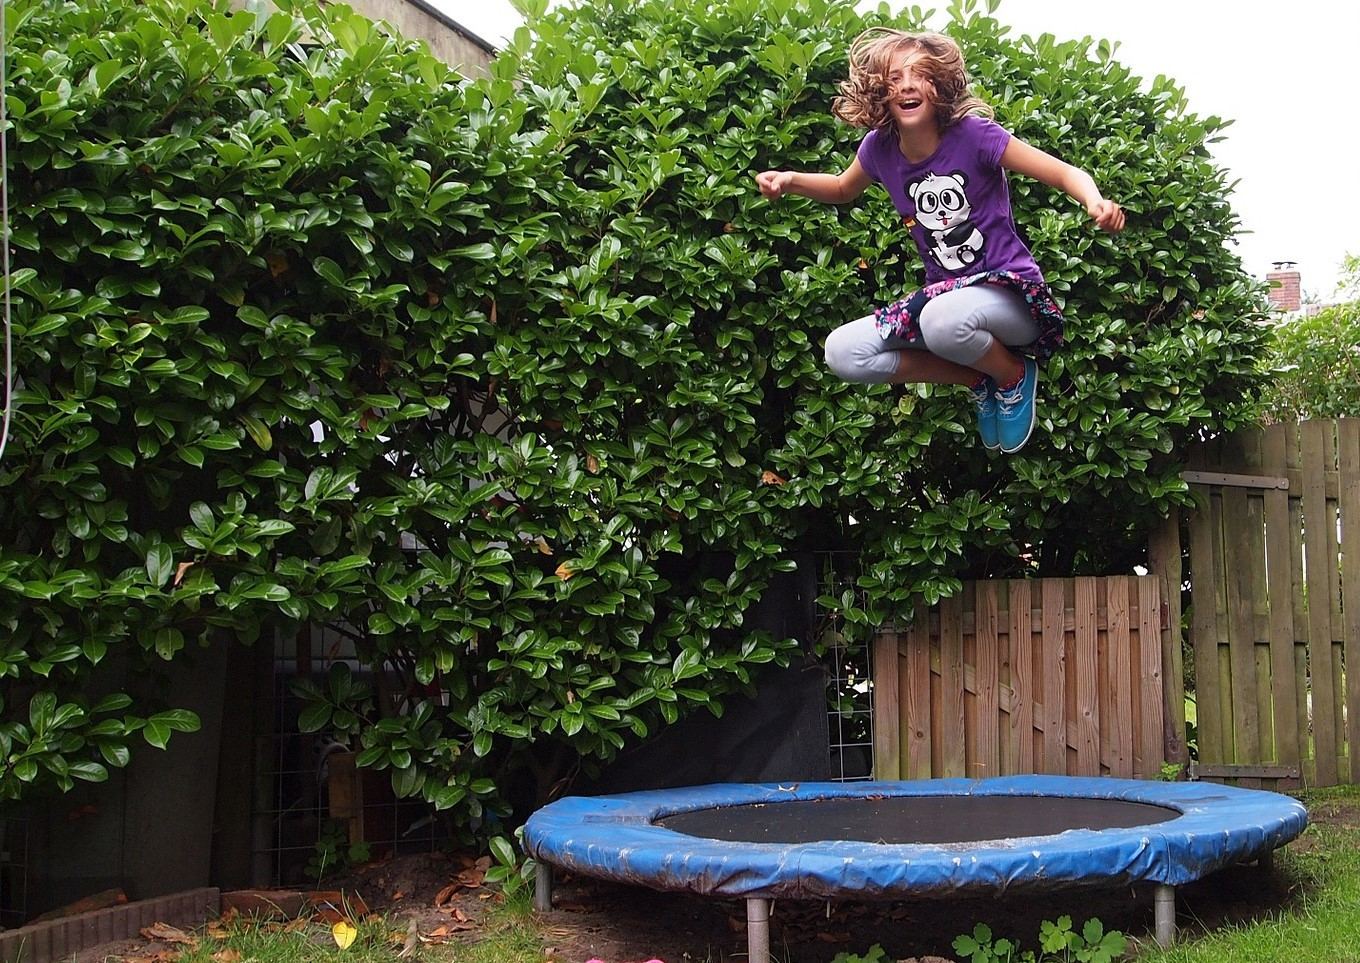 Stock trampolining picture